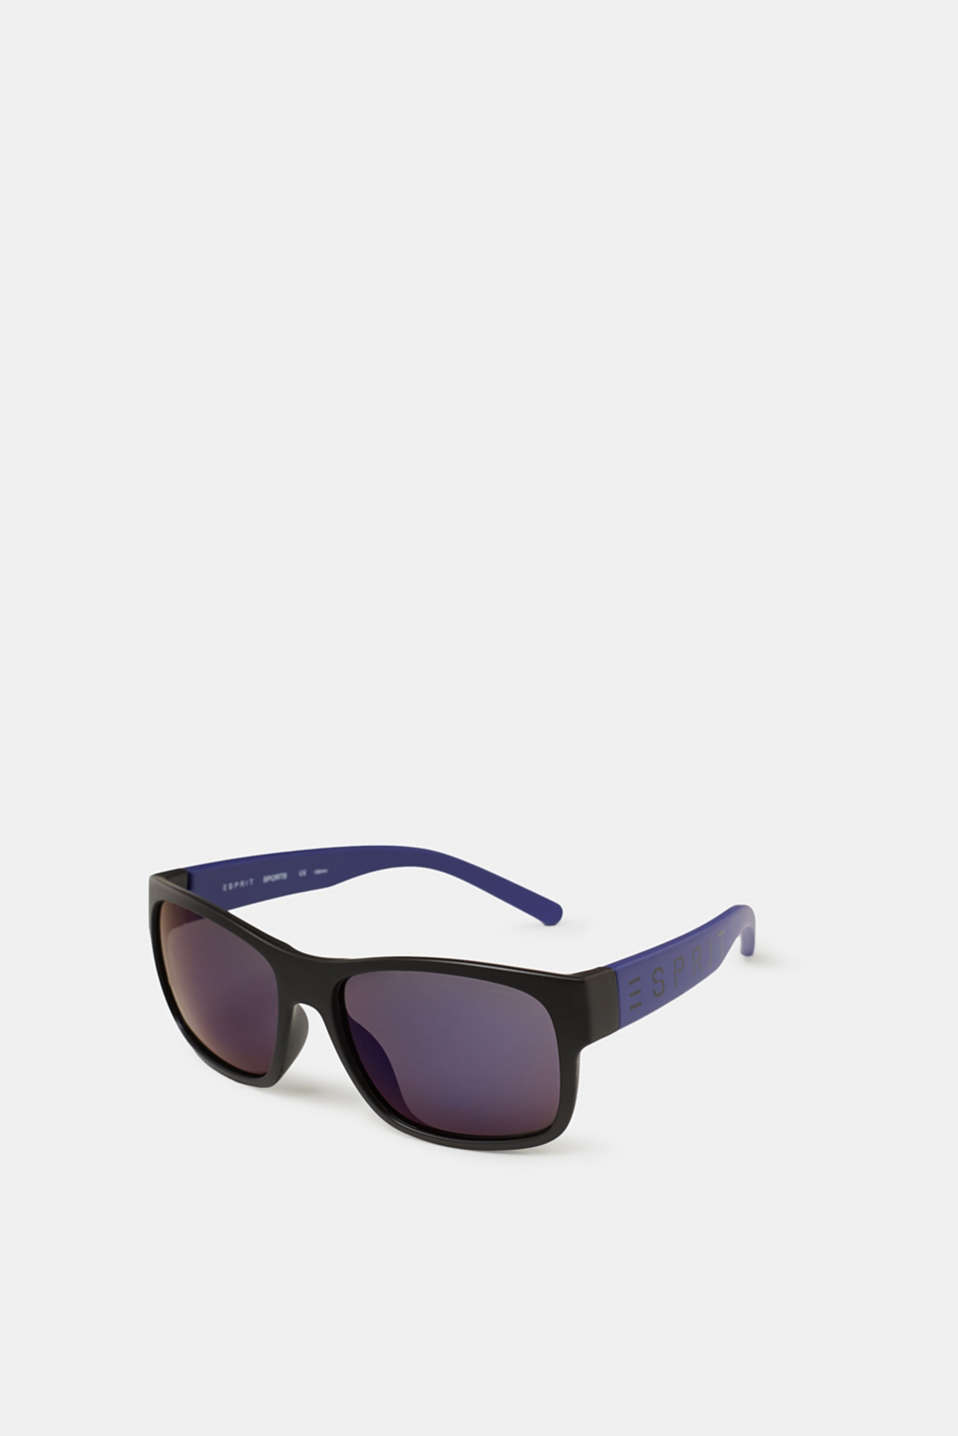 Esprit - Unisex sunglasses with neon temples